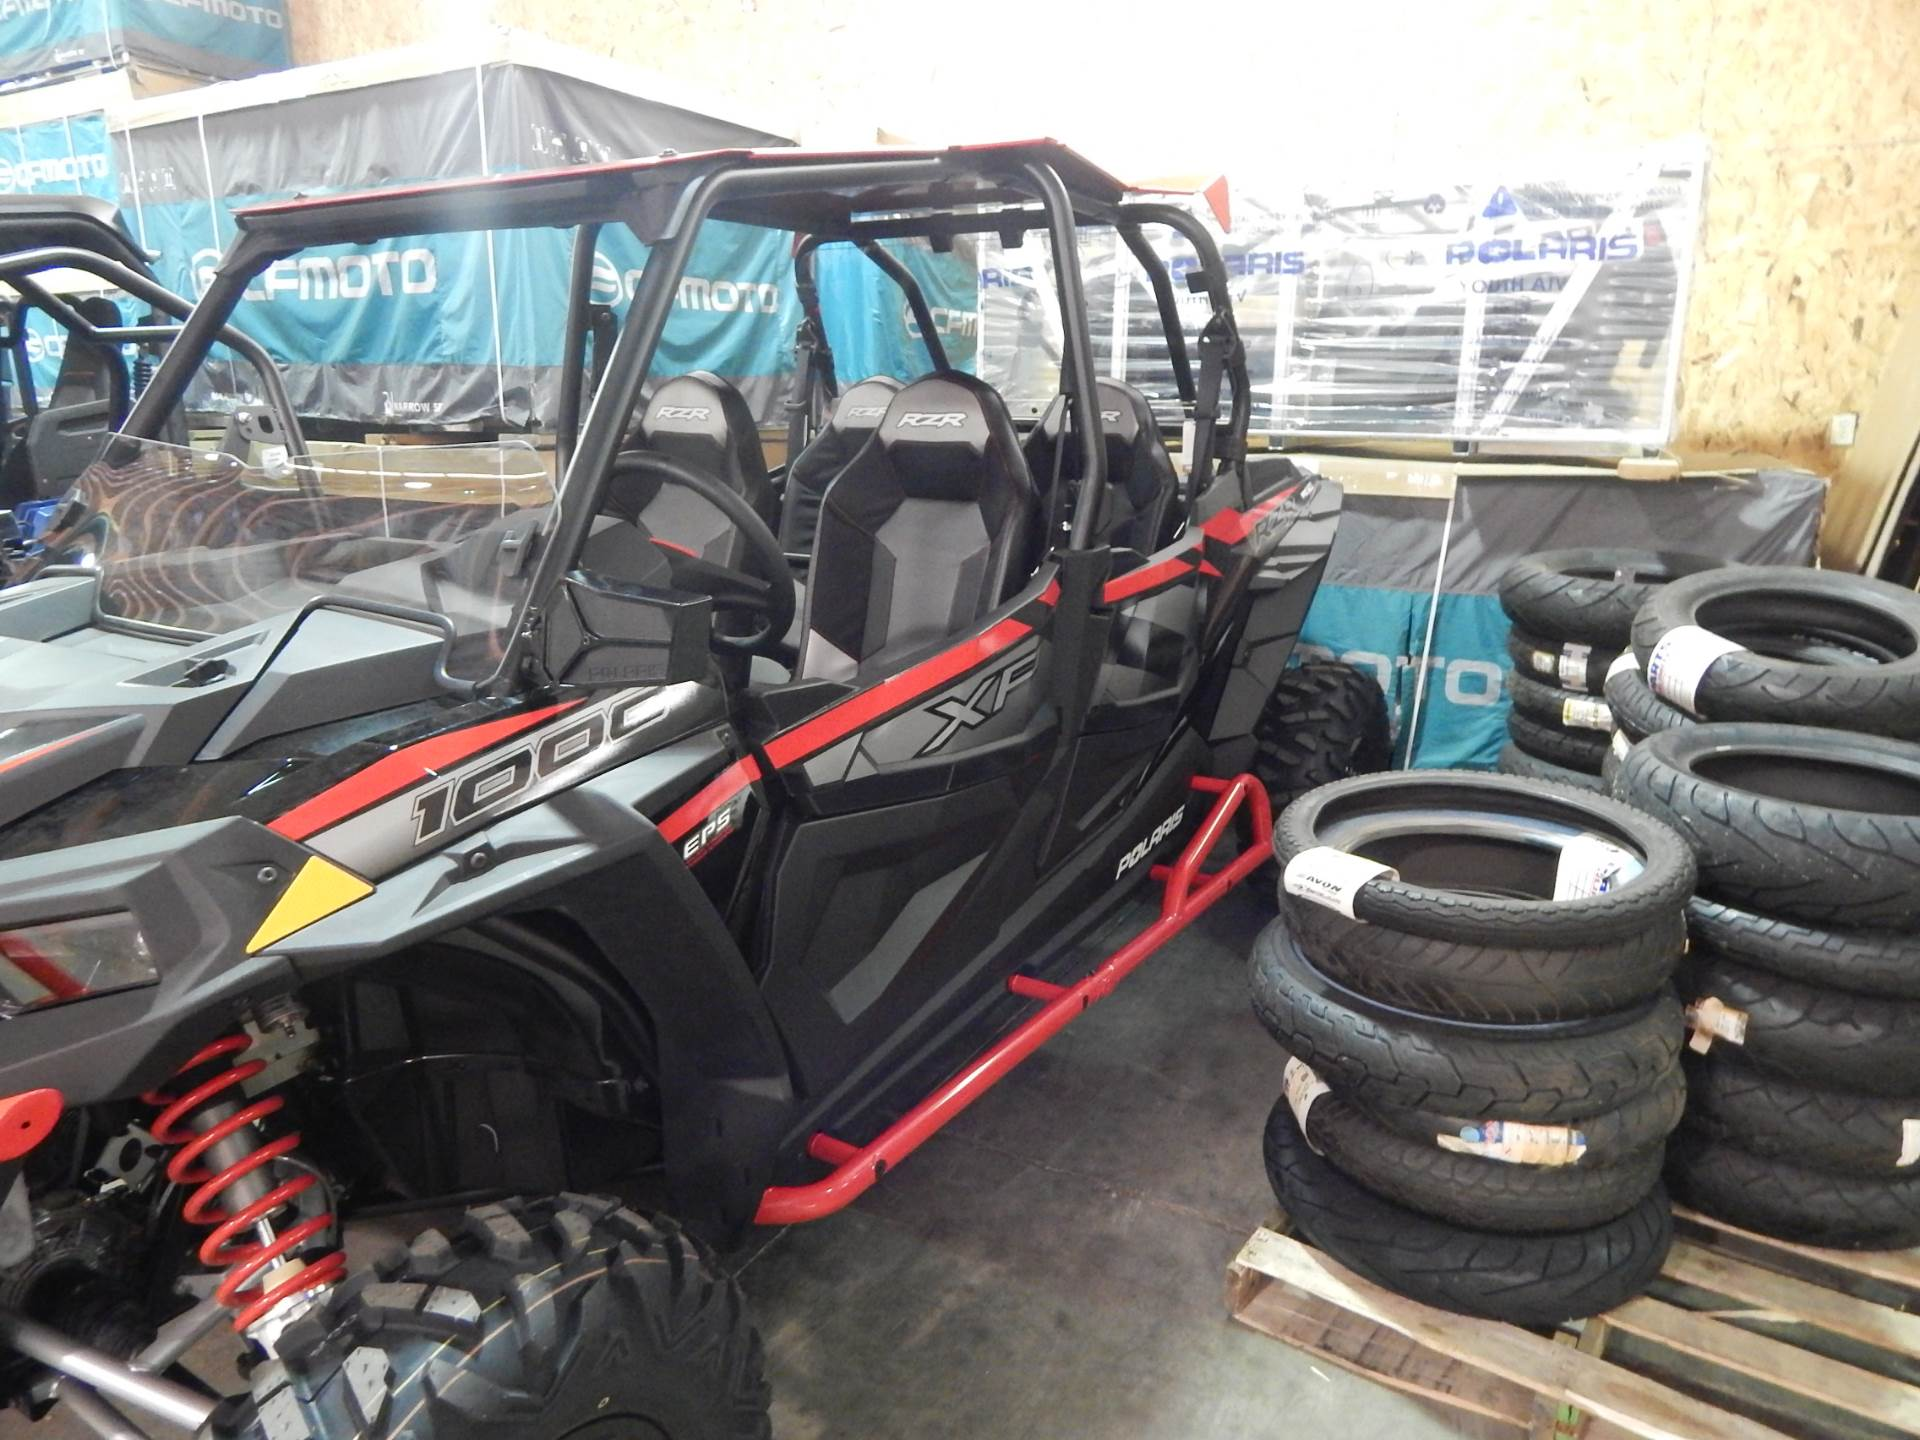 2019 Polaris RZR XP 4 1000 EPS in Carroll, Ohio - Photo 2